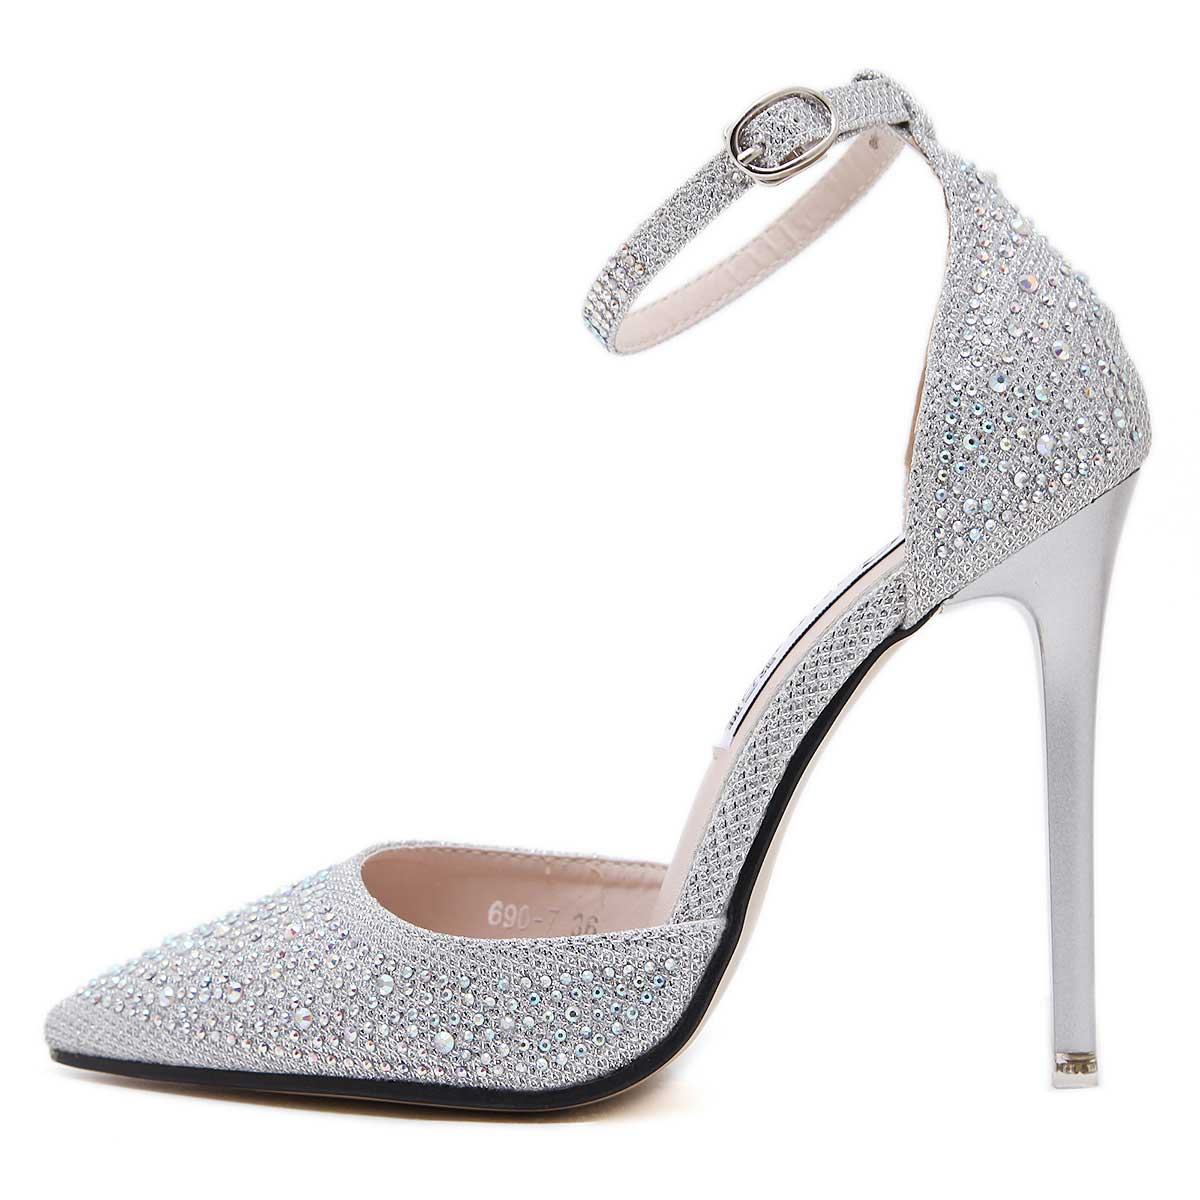 Buy Women Pumps Bling High Heels Shoes, Glitter Prom Shoes Siaoryne Siaoryne